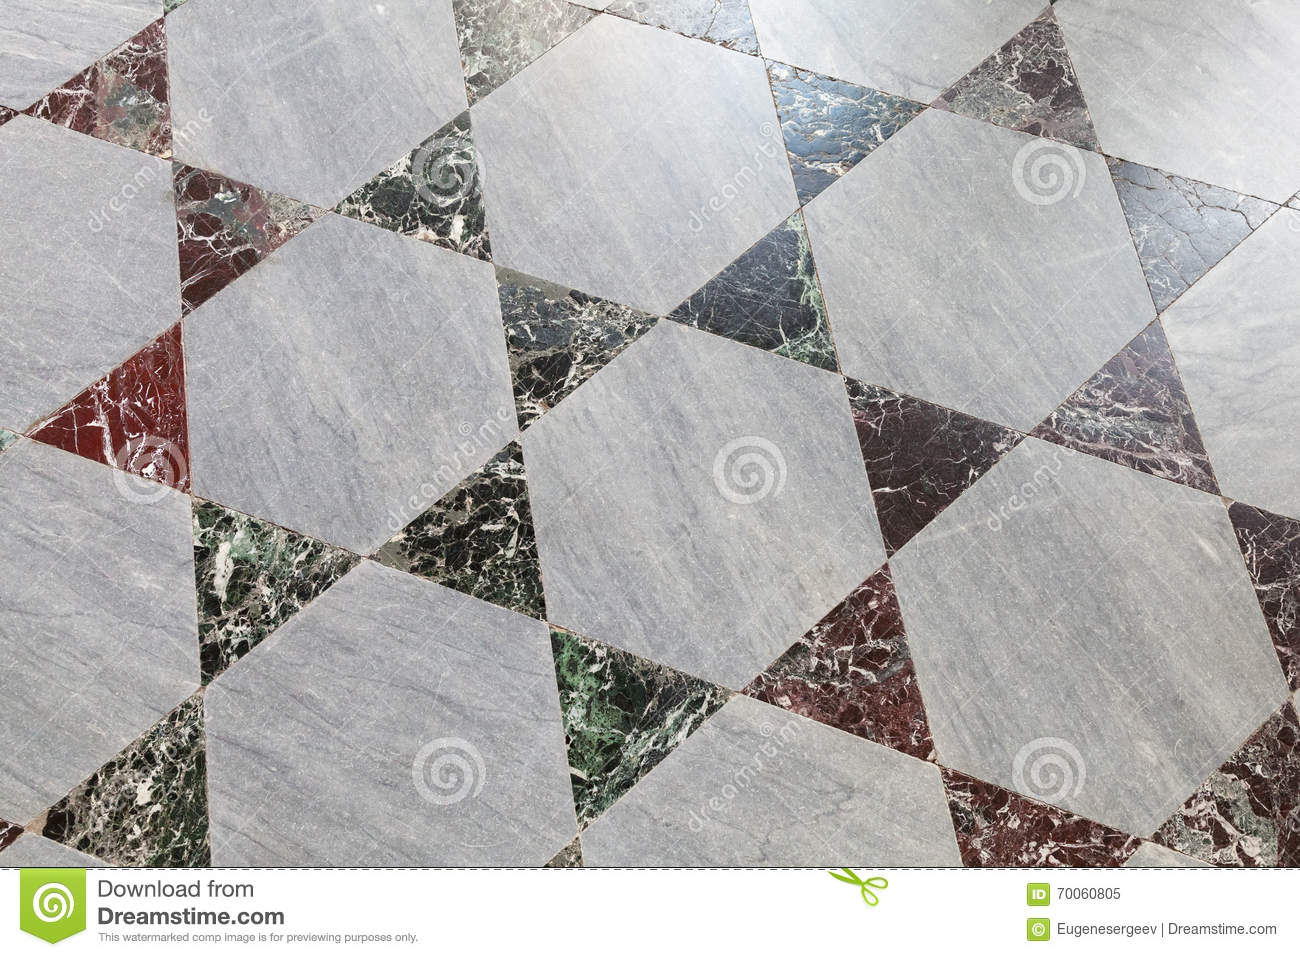 Alter Steinboden Tiling, polygonales Muster